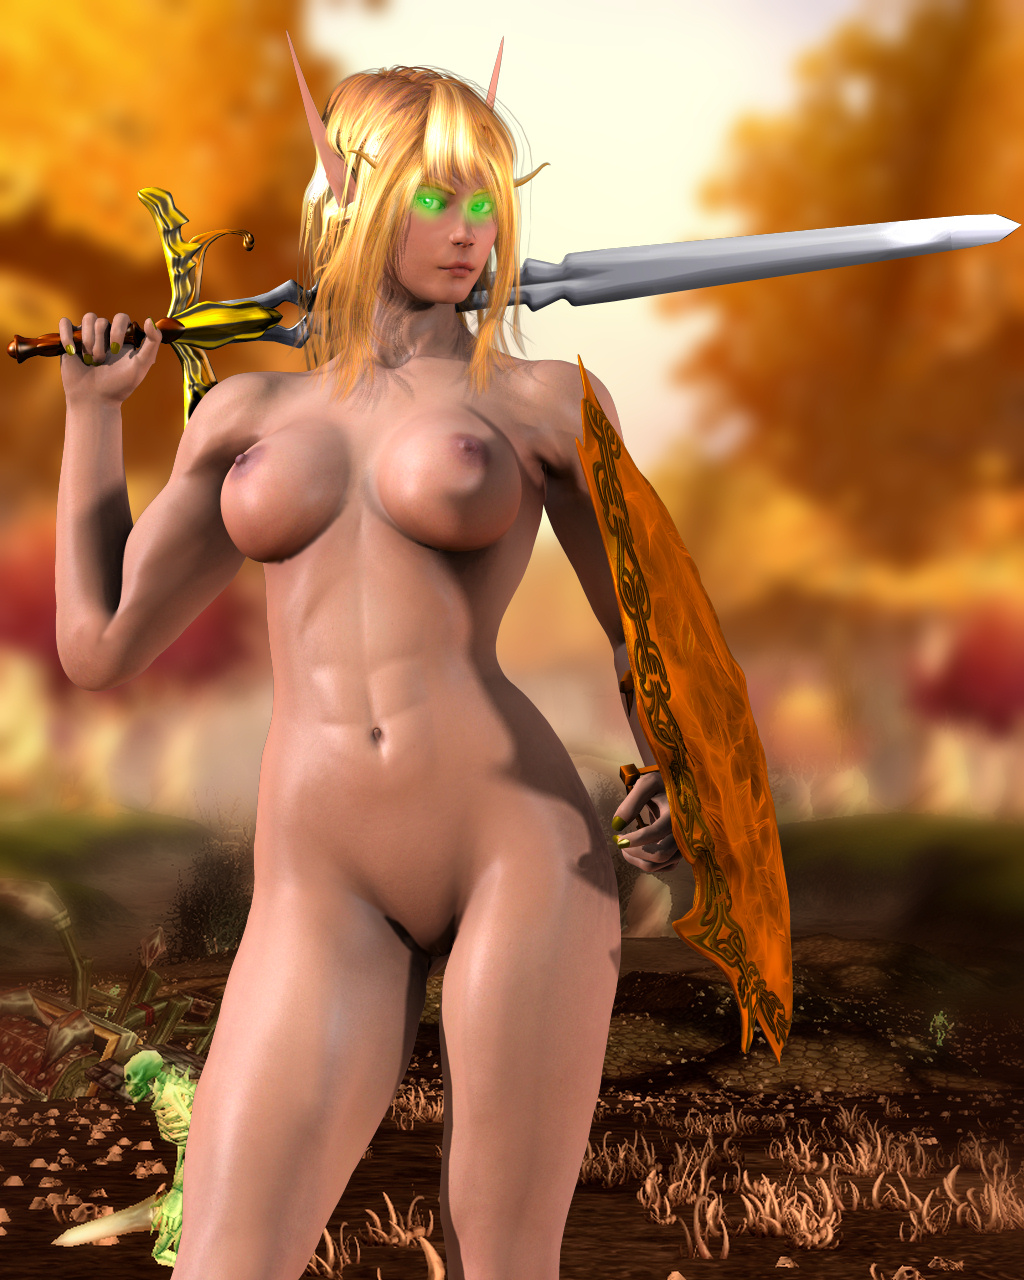 World of warcraft hot nude blonde babes nsfw comics